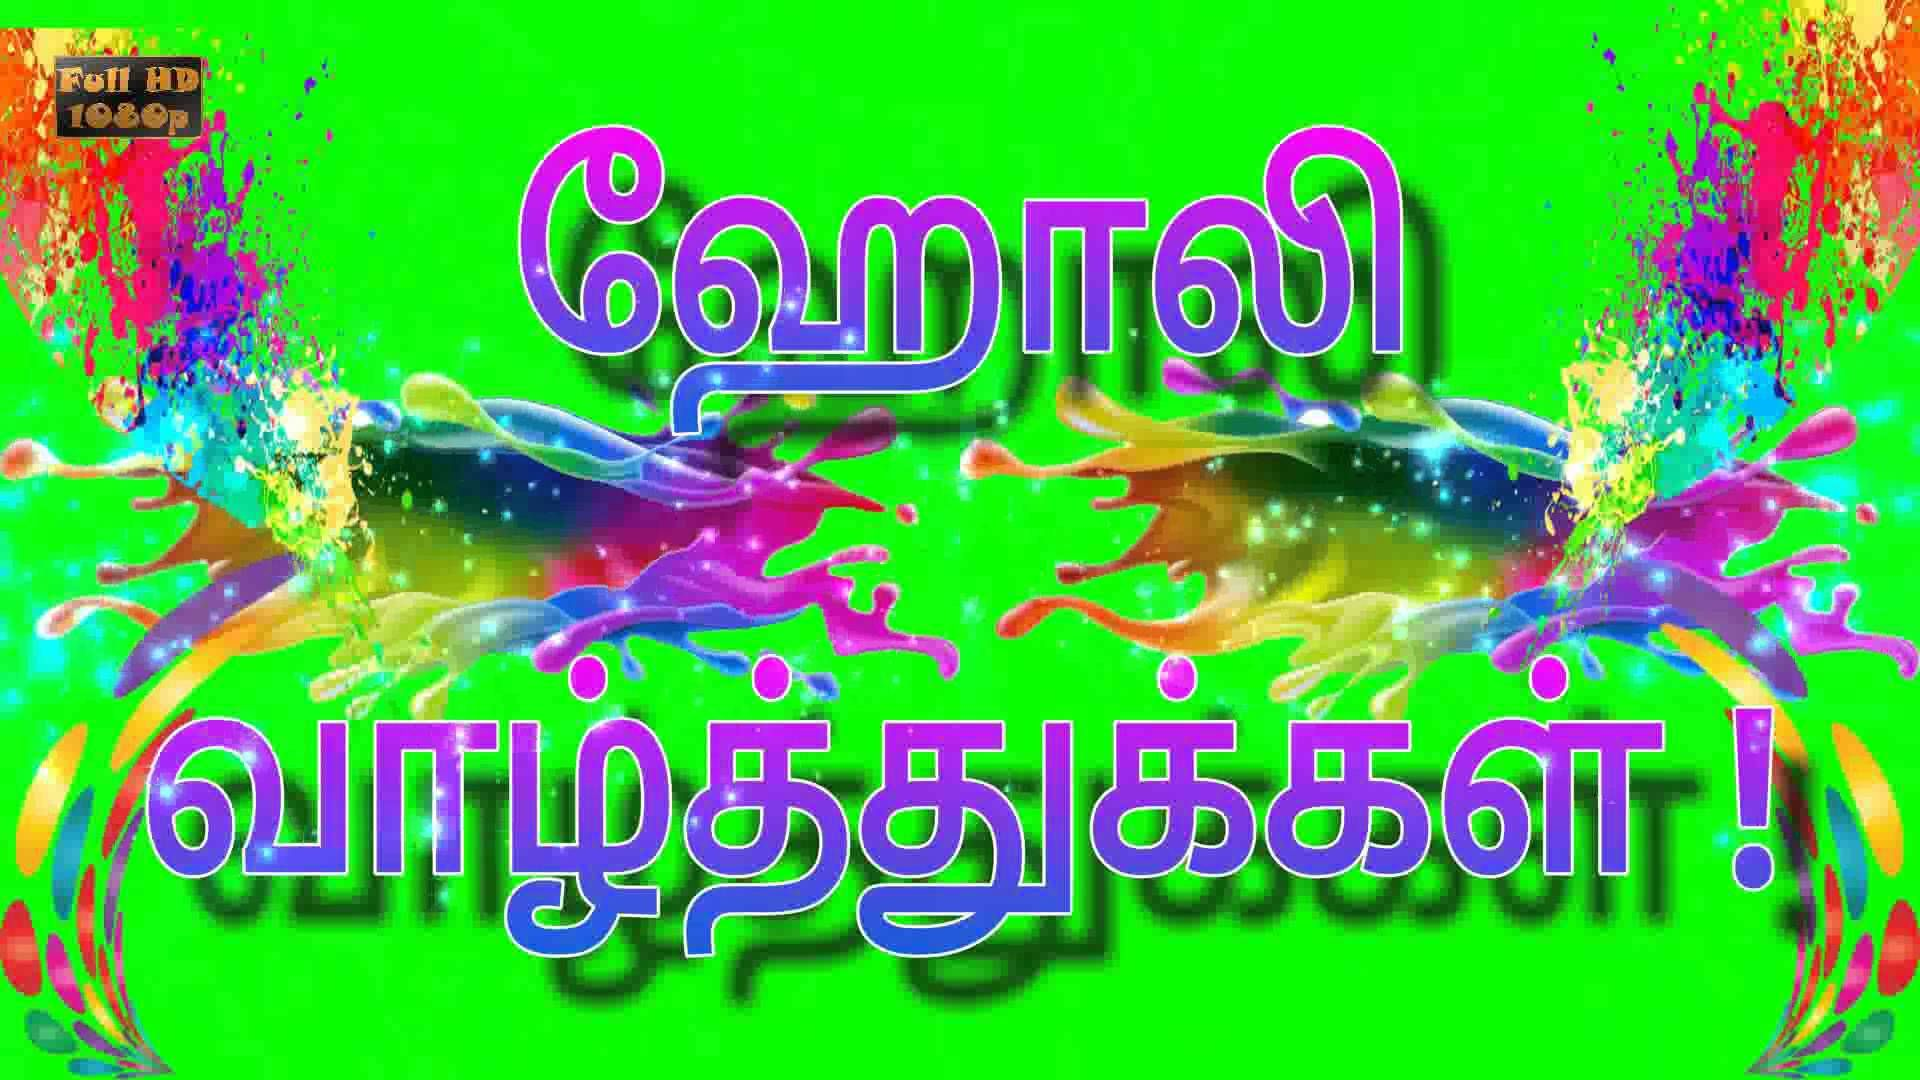 Happy Holi Wishes In Tamil Holi Greetings In Tamil Holi Whatsapp